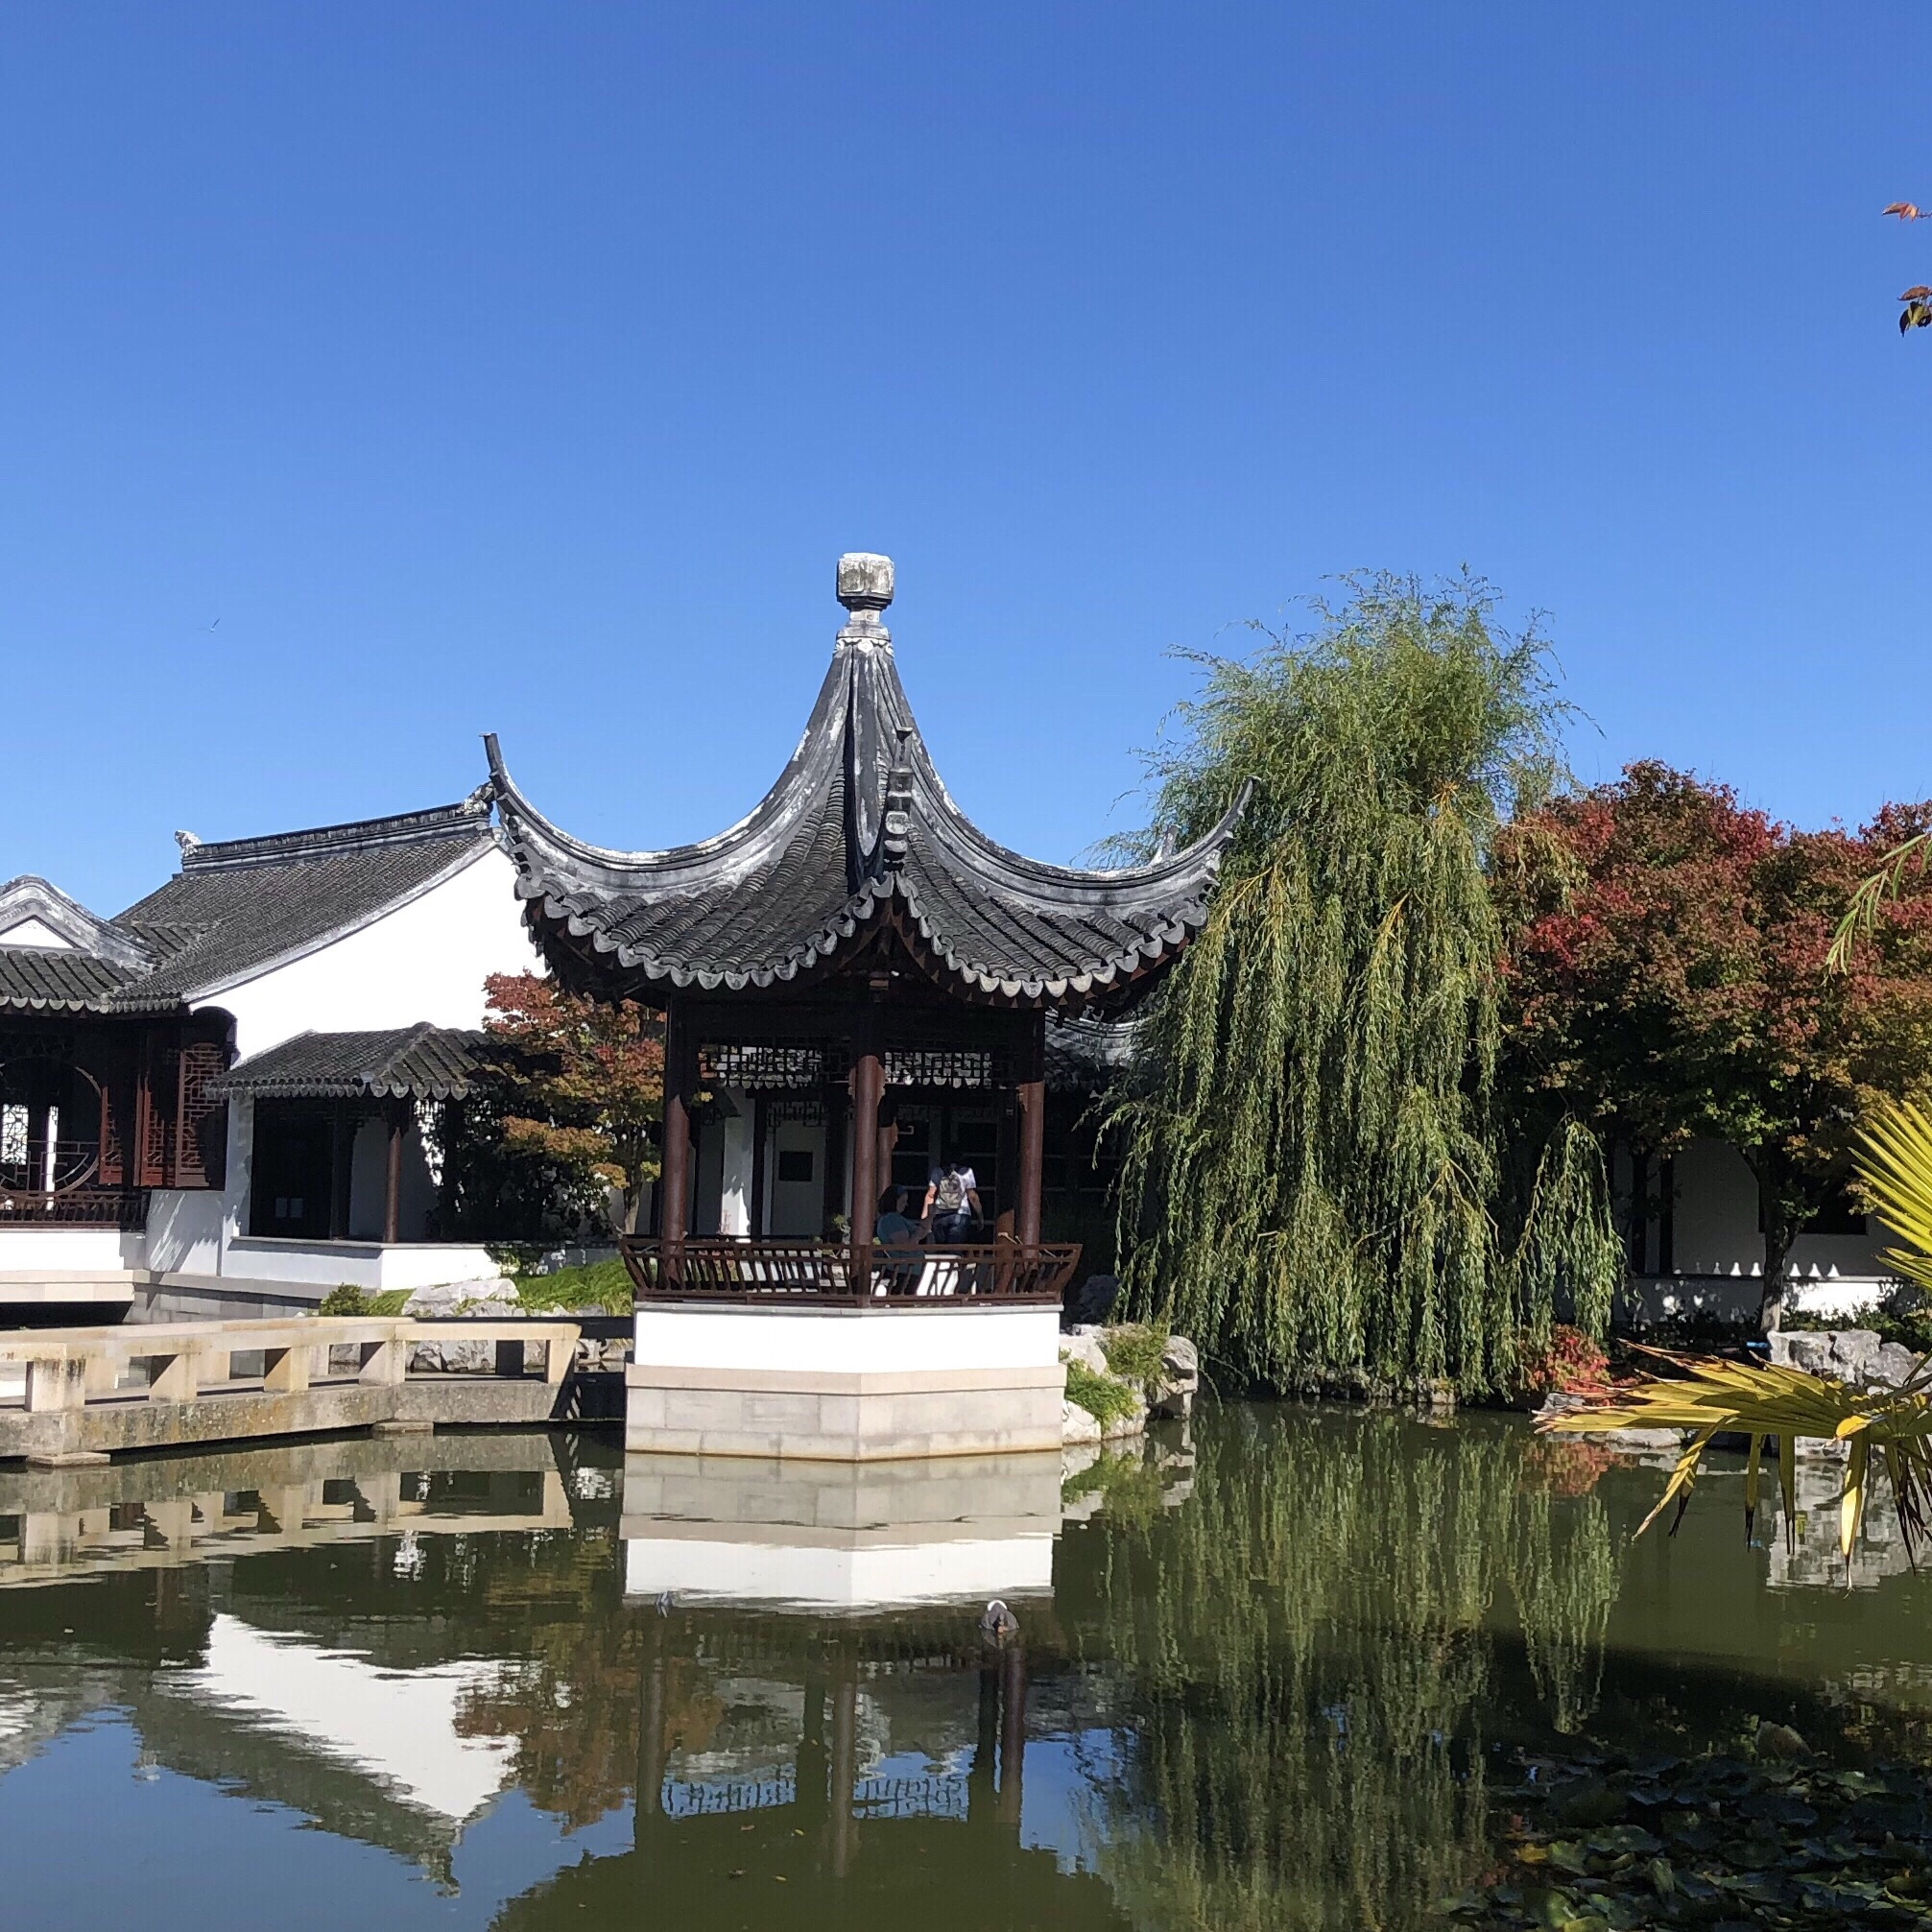 2.WANDER THE CHINESE GARDENS AND GRAB A TEA - Beautiful and tranquil spot to wander around and appreciate the gardens. Grab a traditional tea to enjoy by the water after.